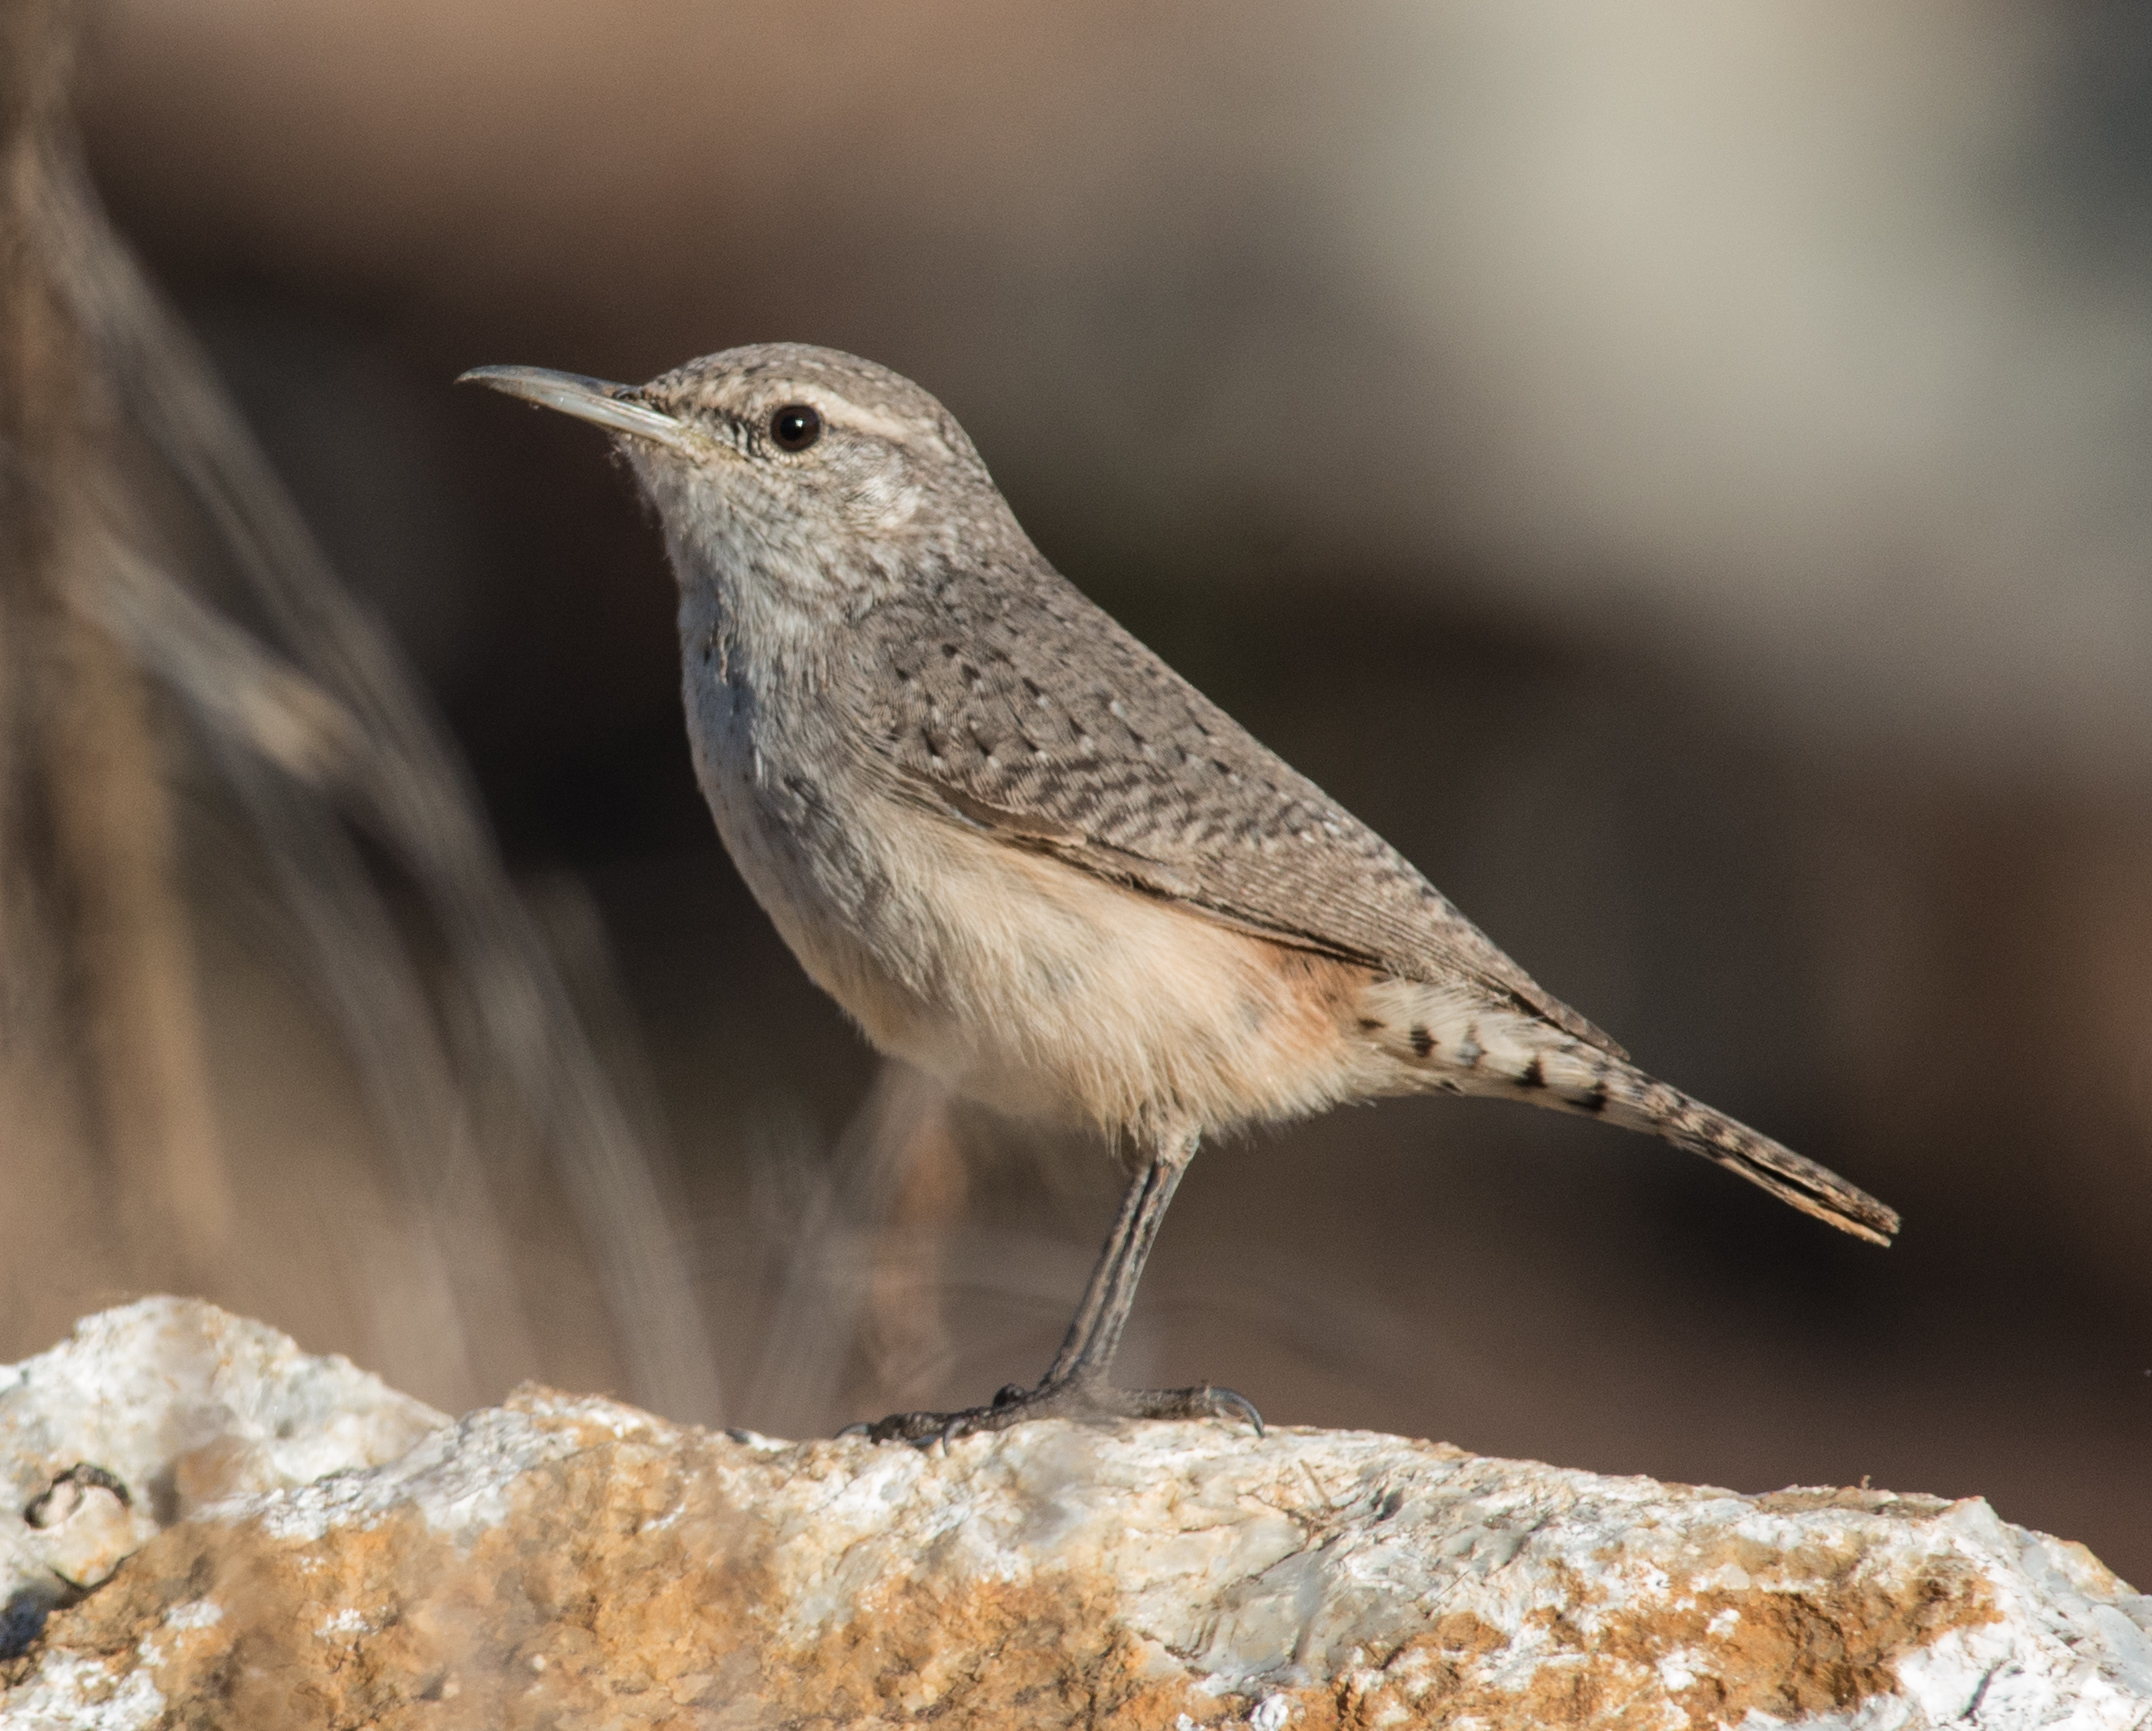 Rock Wren (Salpinctes obsoletus)  Taken: 11-19-14 9:41 at UCSC Farm  1/1000, ISO720, f/8, 500mm